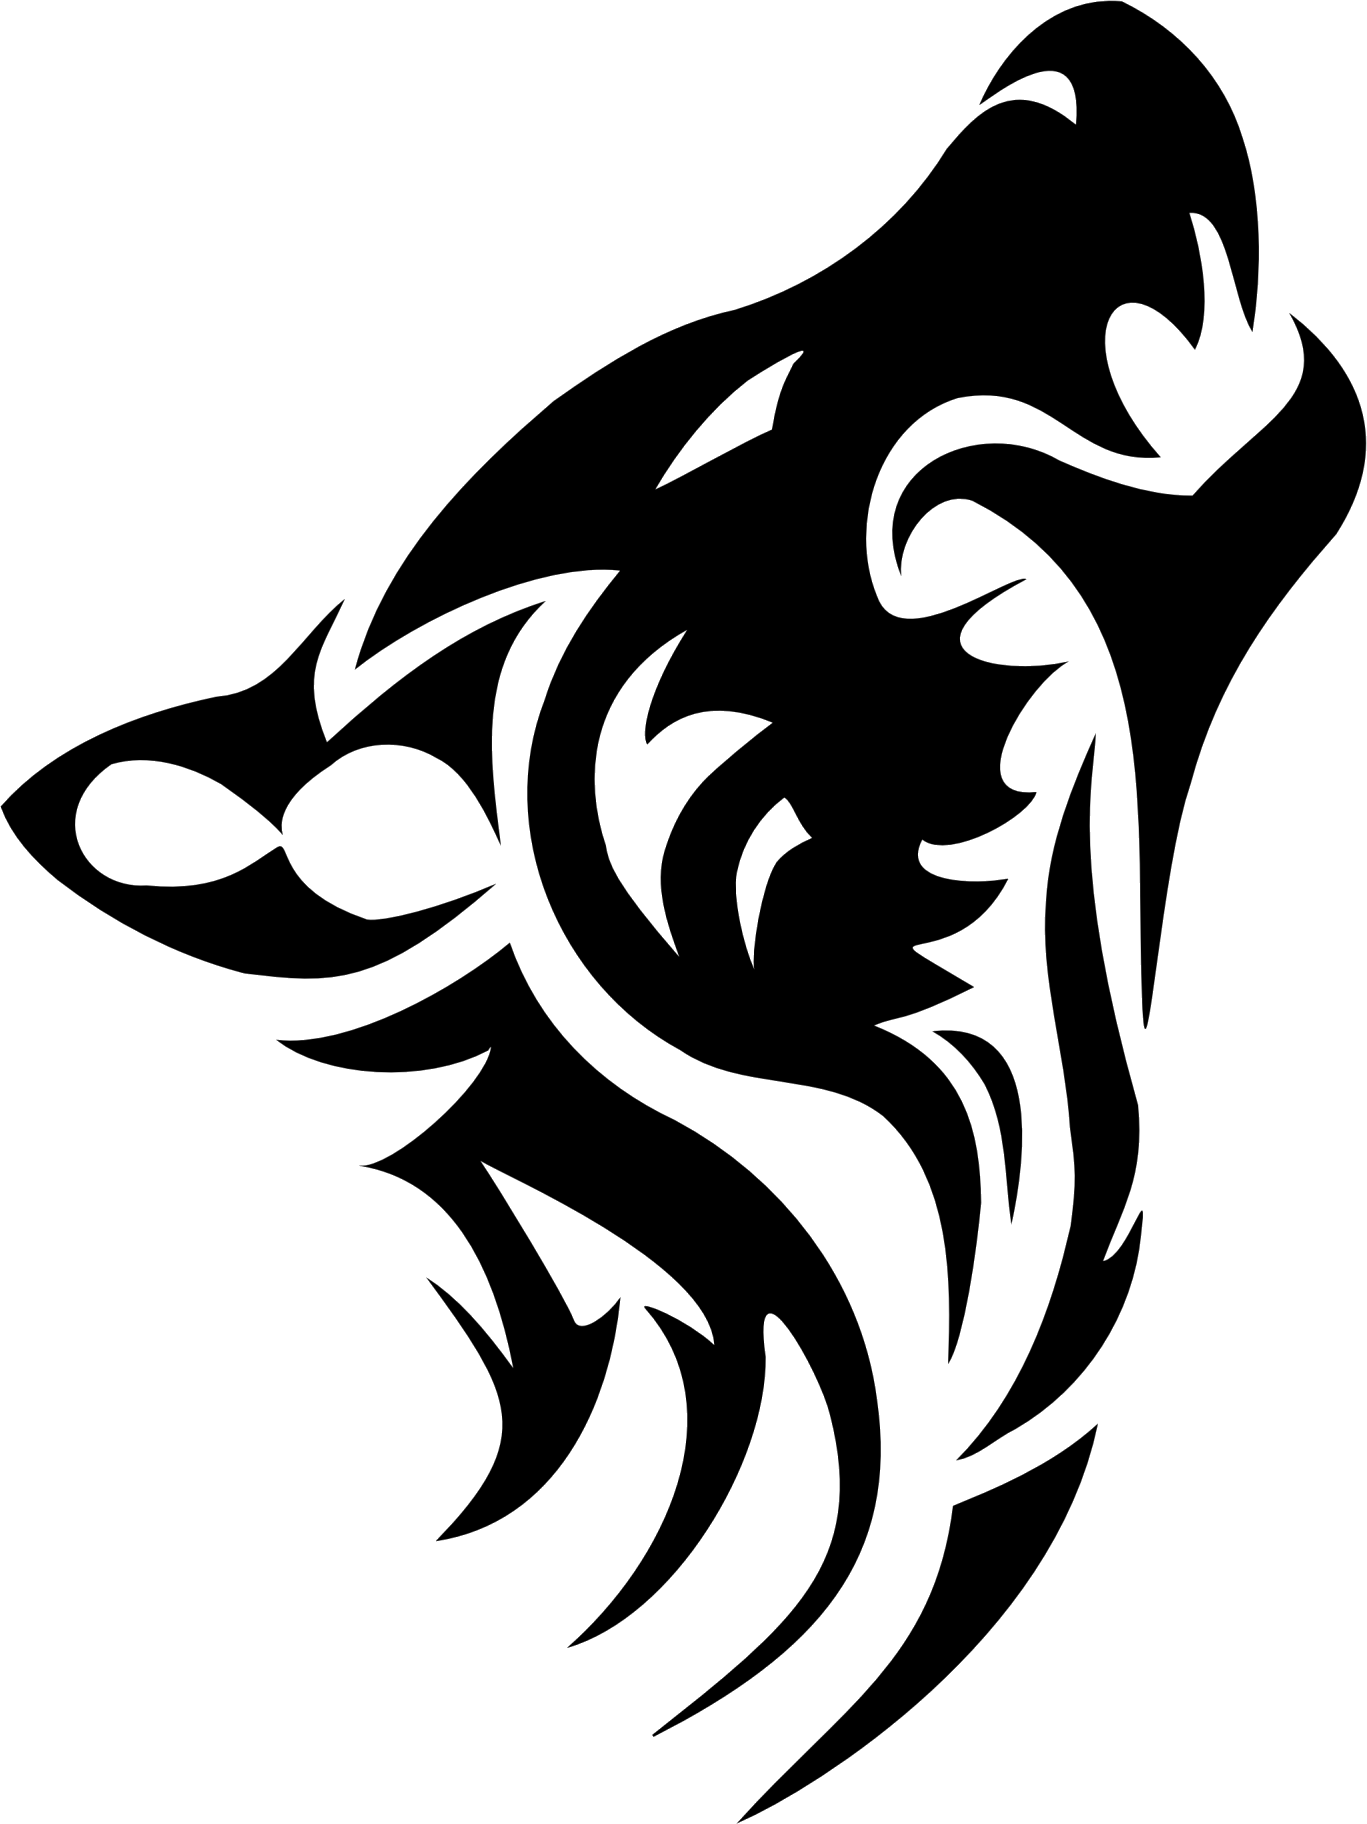 Spine tattoos png. Wolf transparent images all